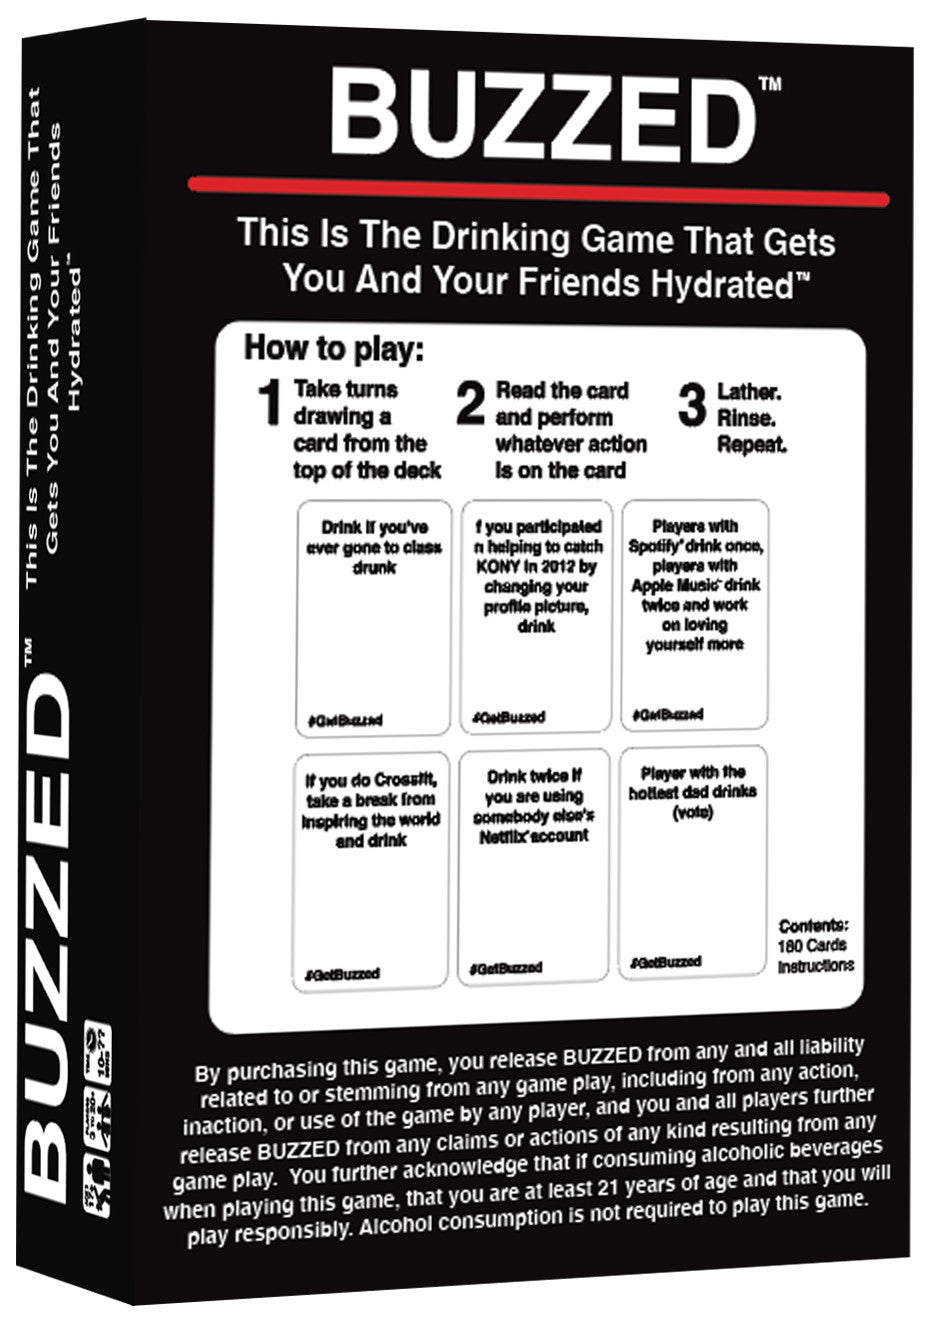 Buzzed: Hydrated Edition - Party Game